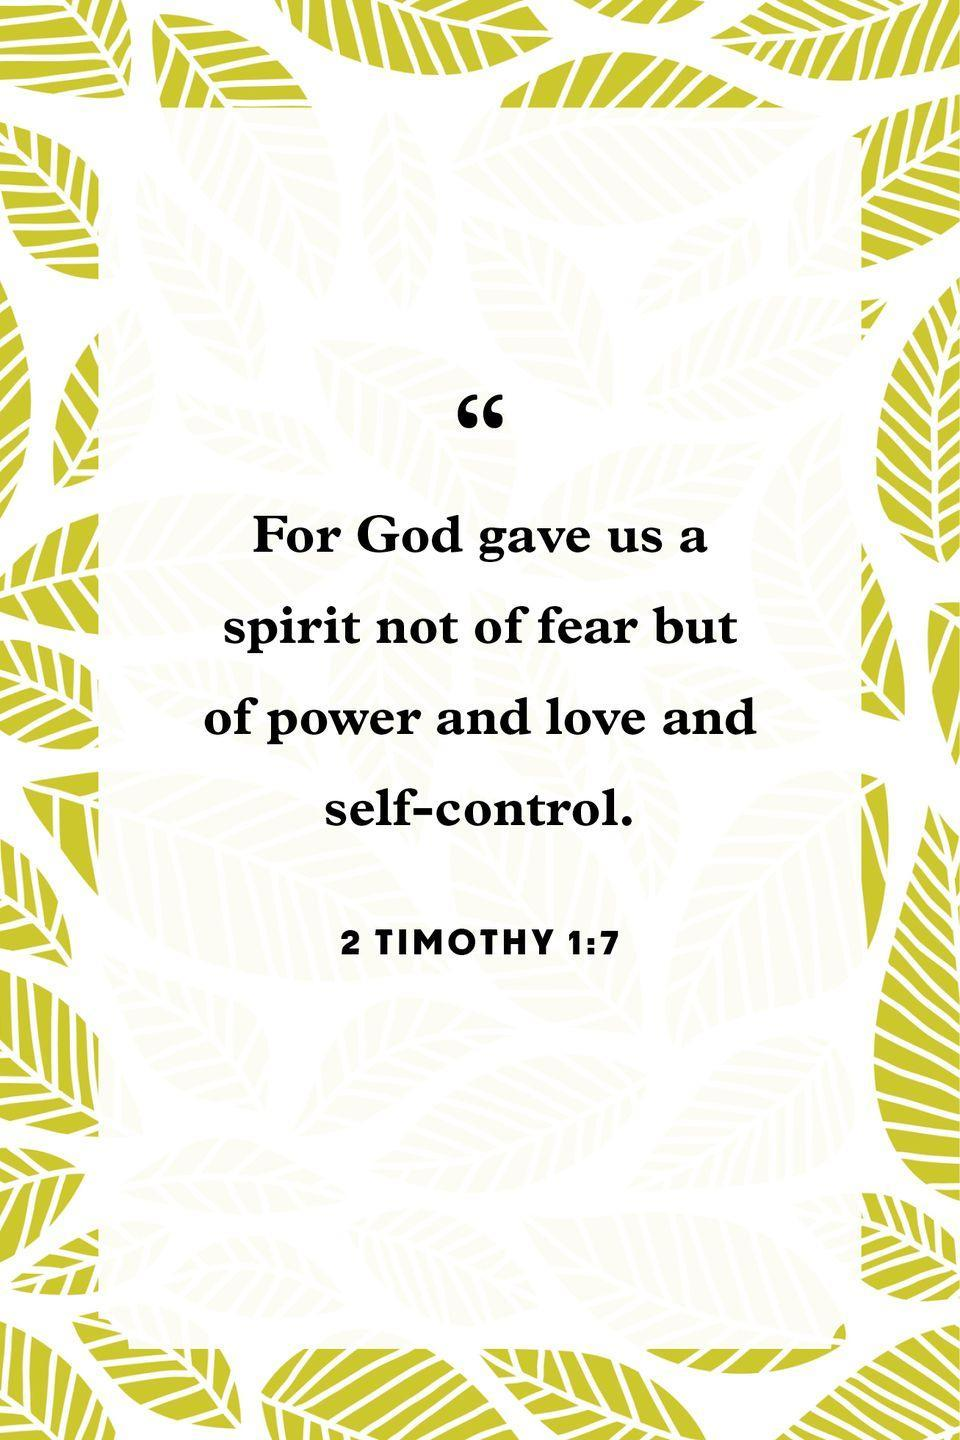 "<p>""For God gave us a spirit not of fear but of power and love and self-control.""</p>"